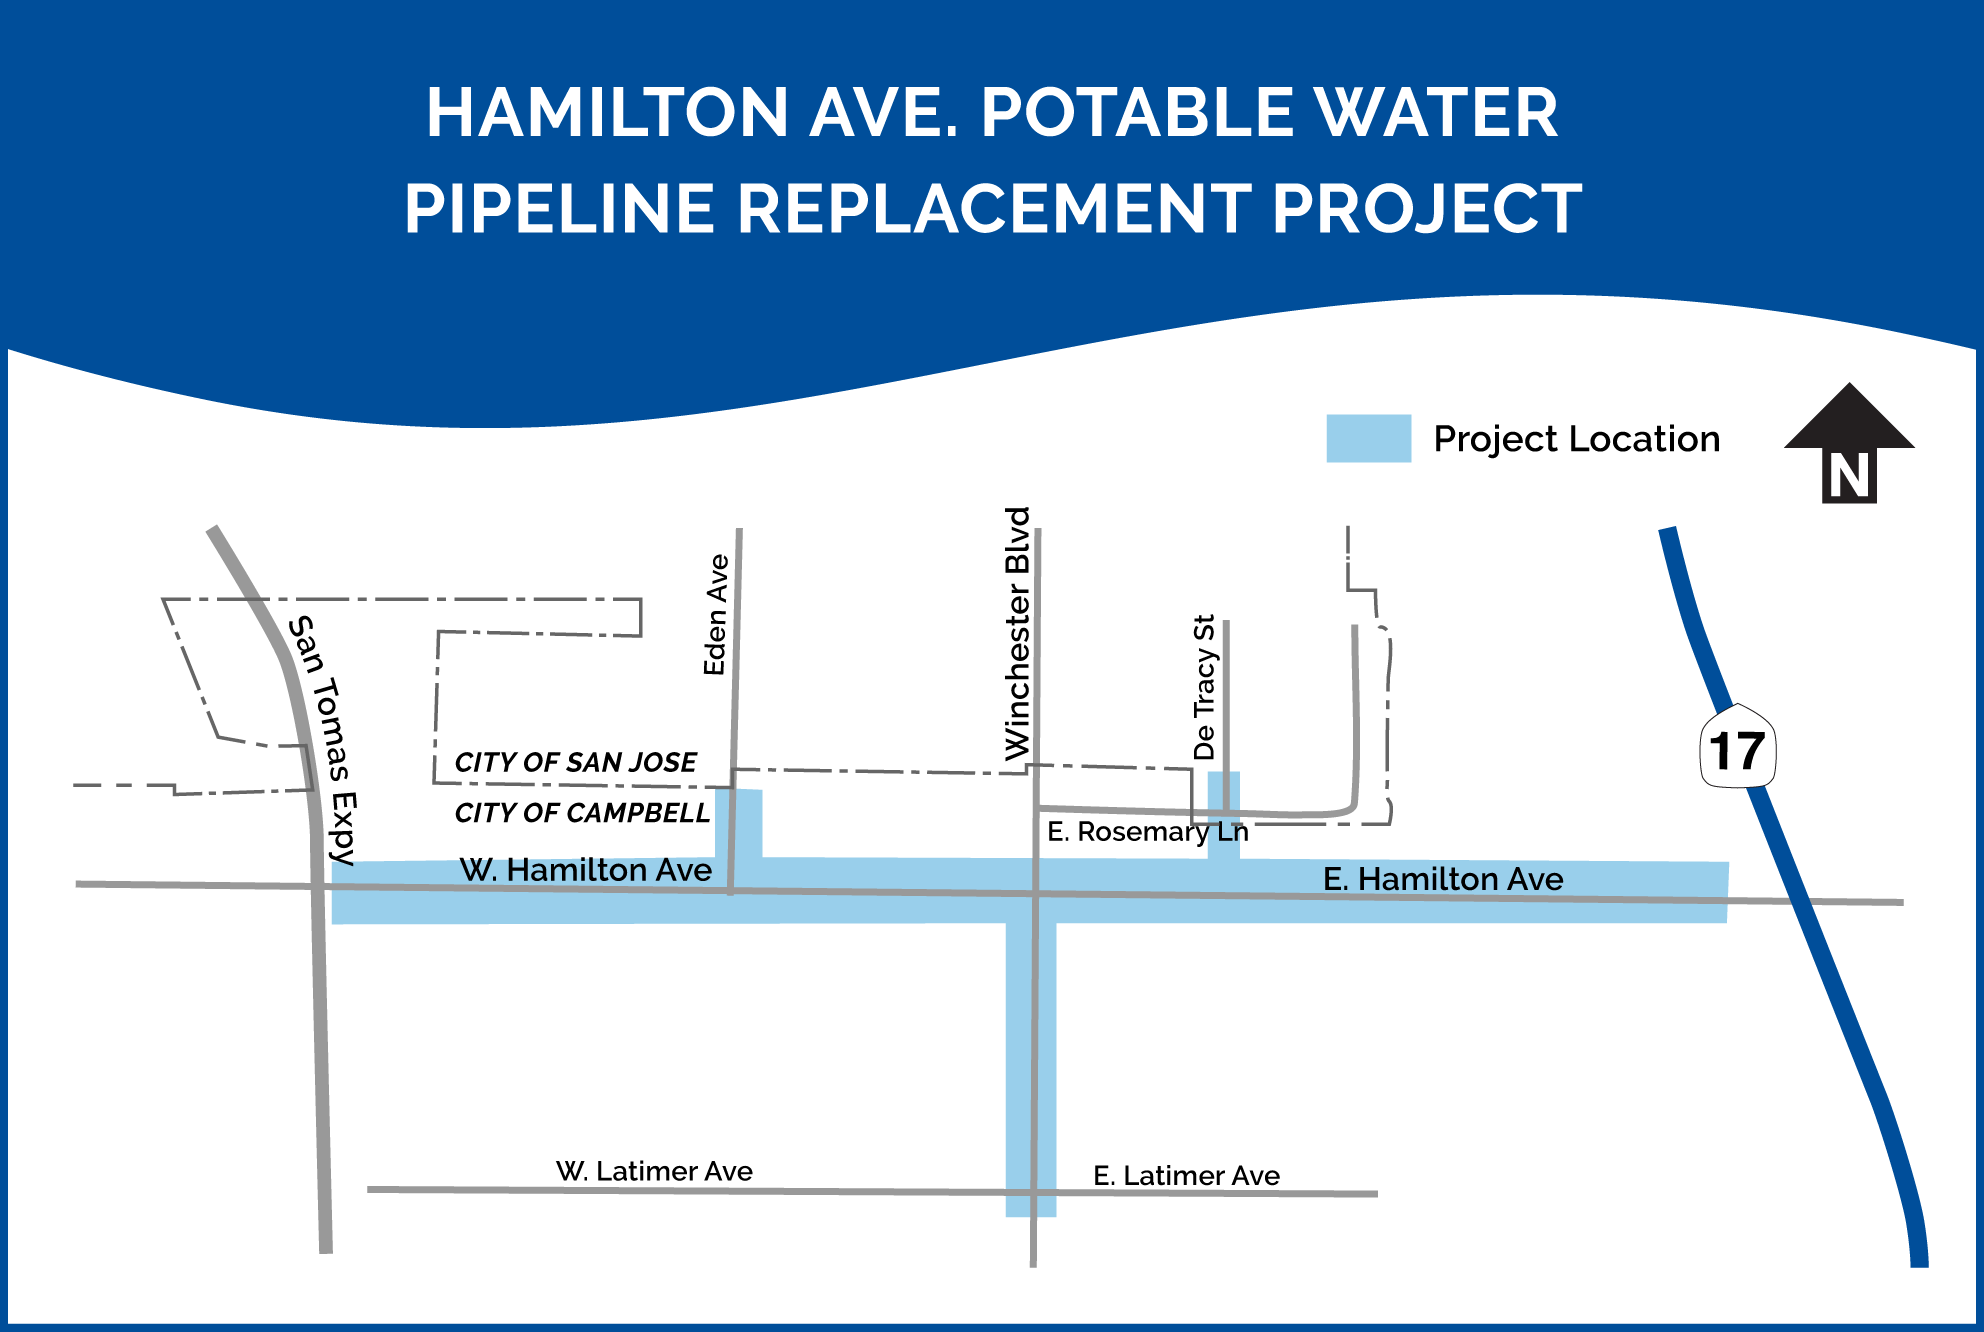 Hamilton Avenue Potable Water Pipeline Replacement Project map